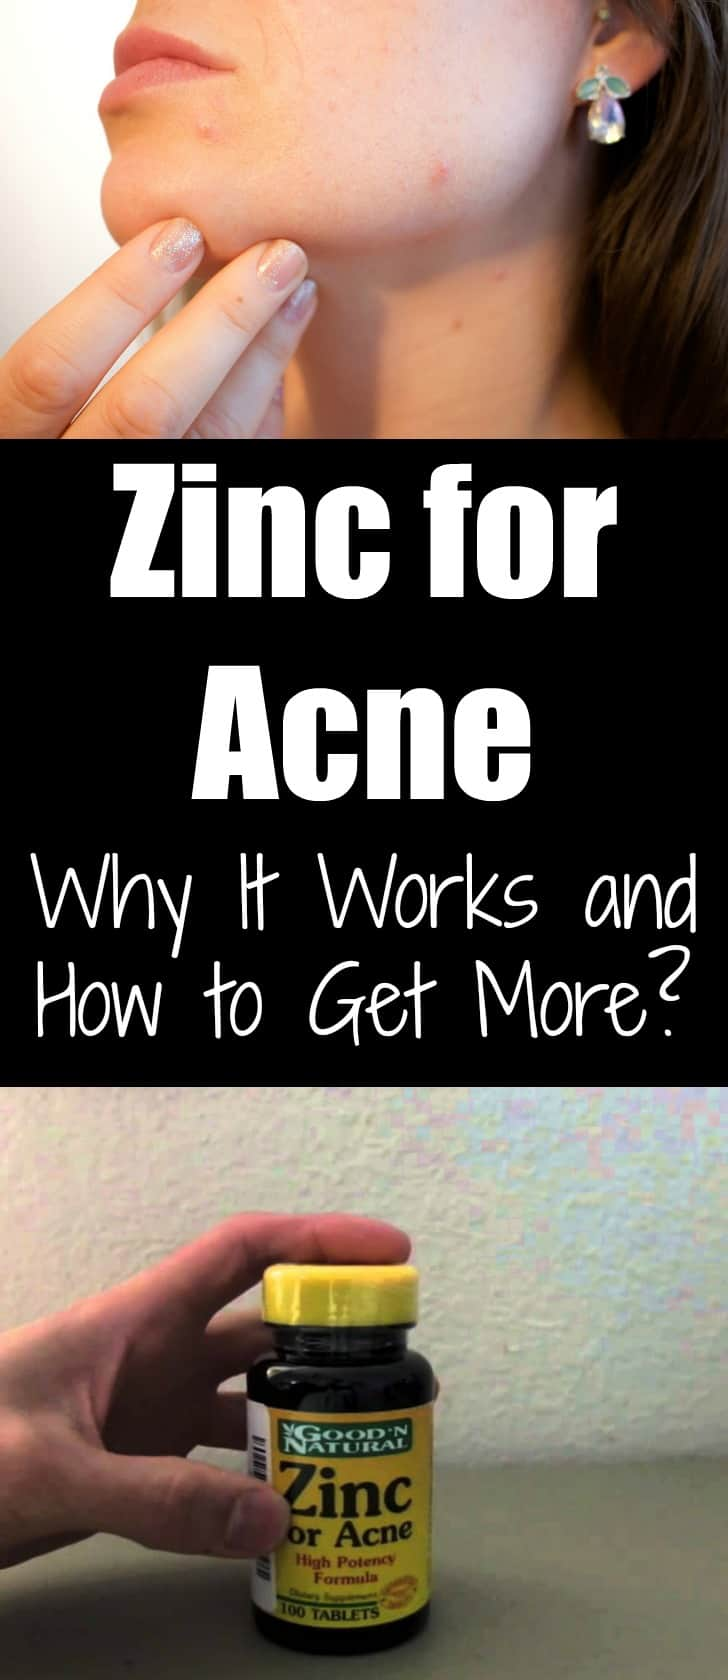 Zinc for Acne: Why It Works and How to Get More?